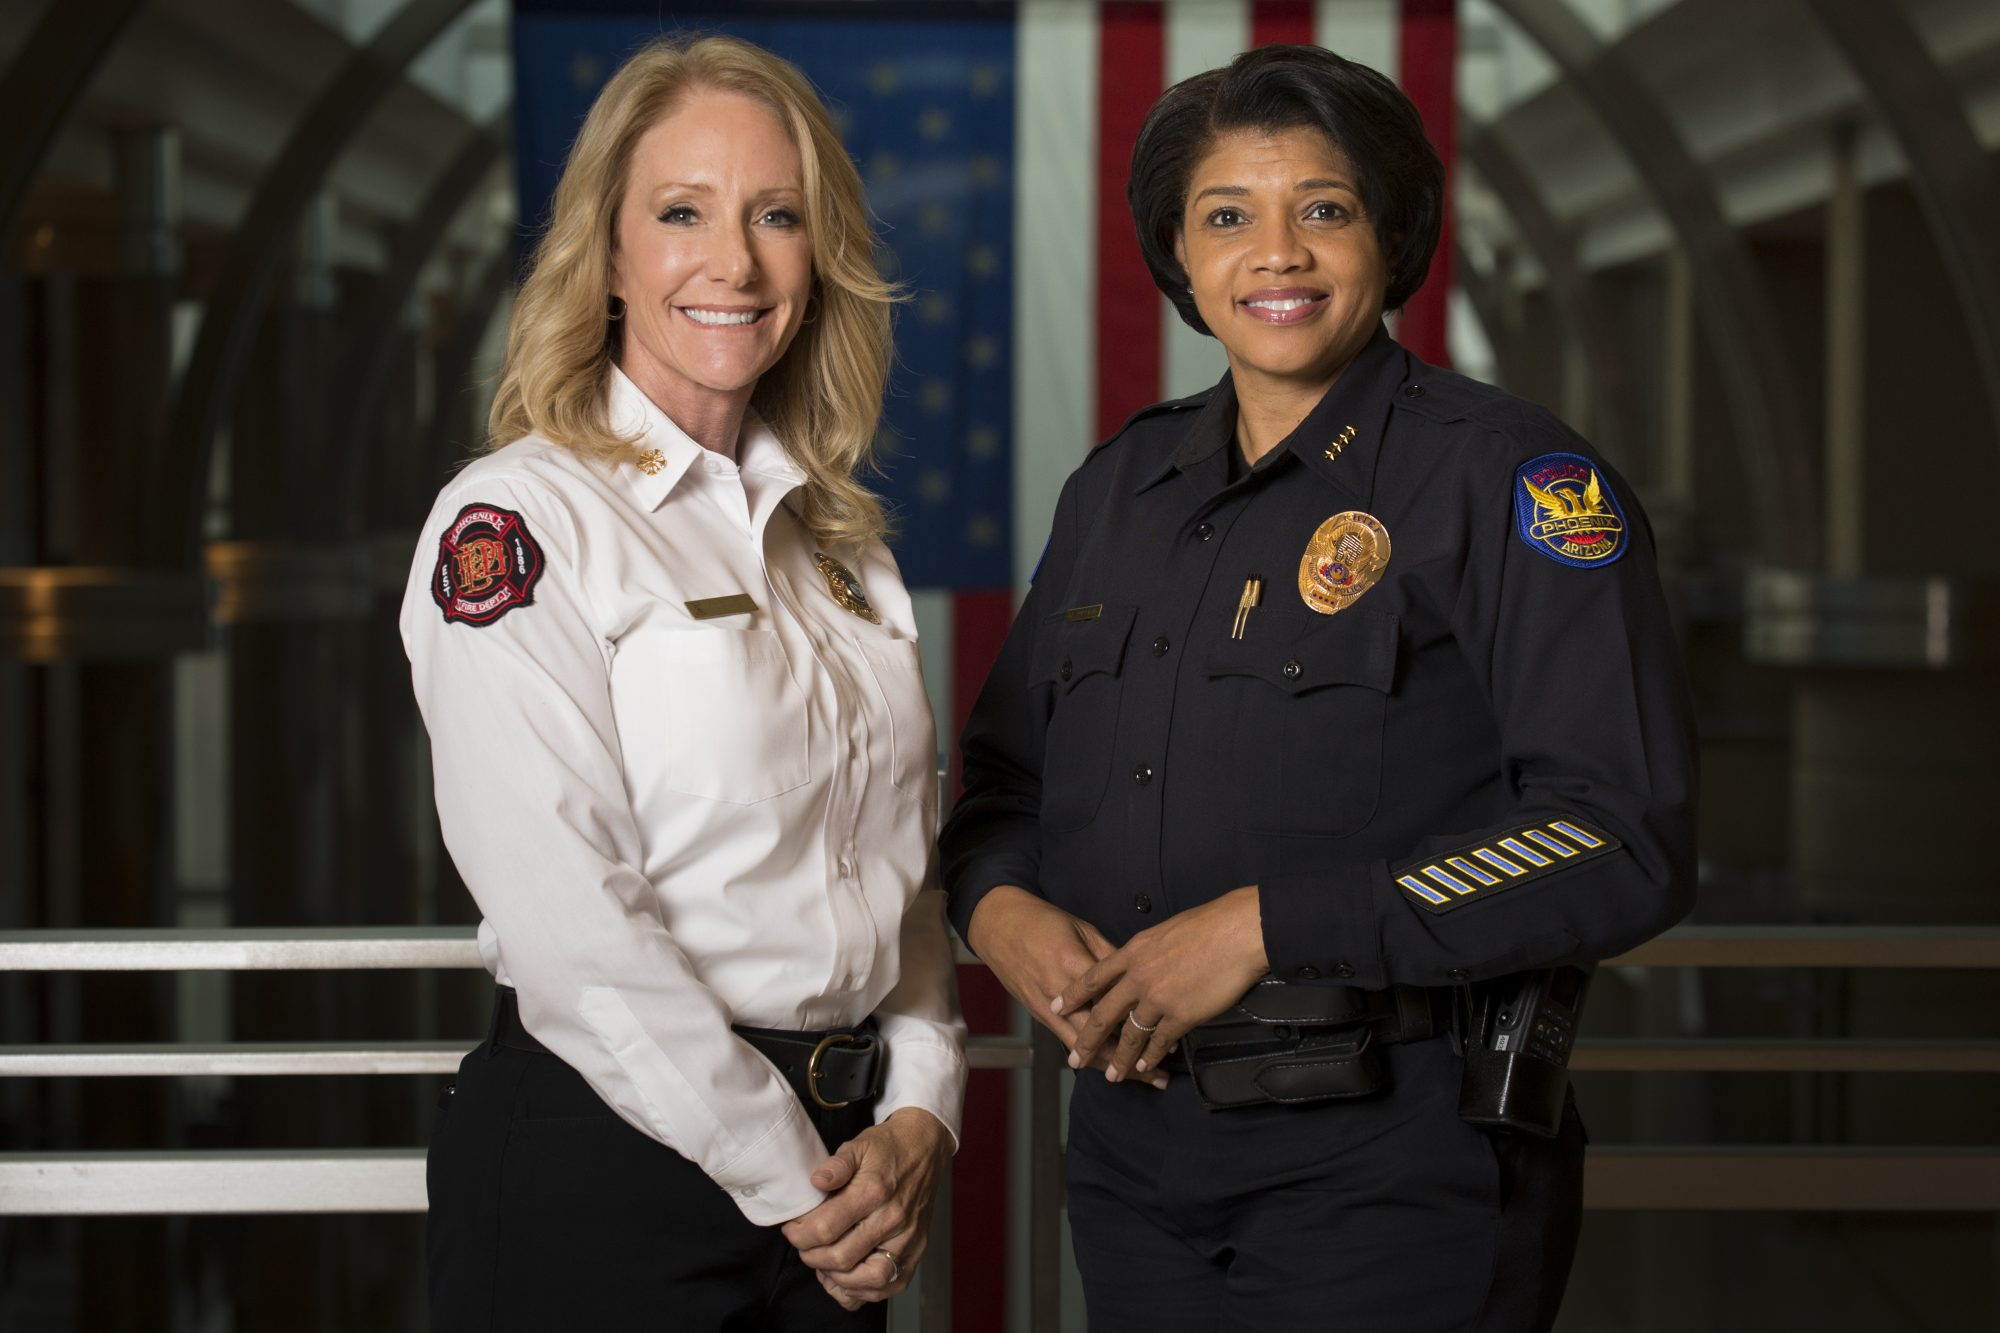 Fire And Police Chiefs Honored As Alumni Of The Year At The Phoenix UHSD Foundation Scholarship Dinner